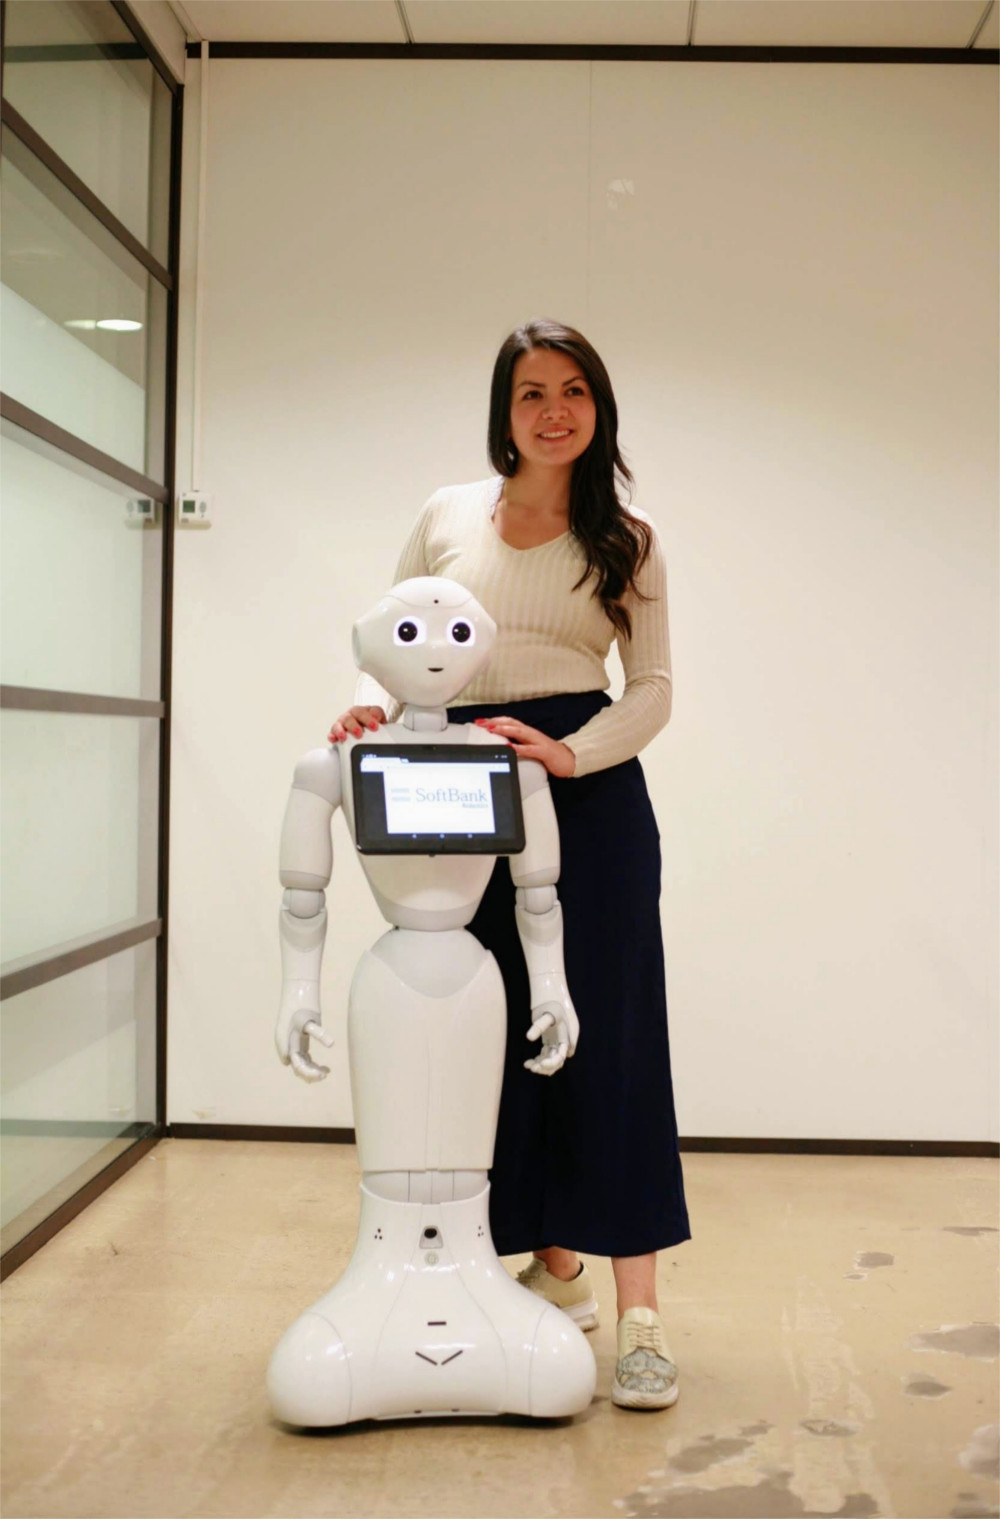 Natalia Calvo with Pepper robot